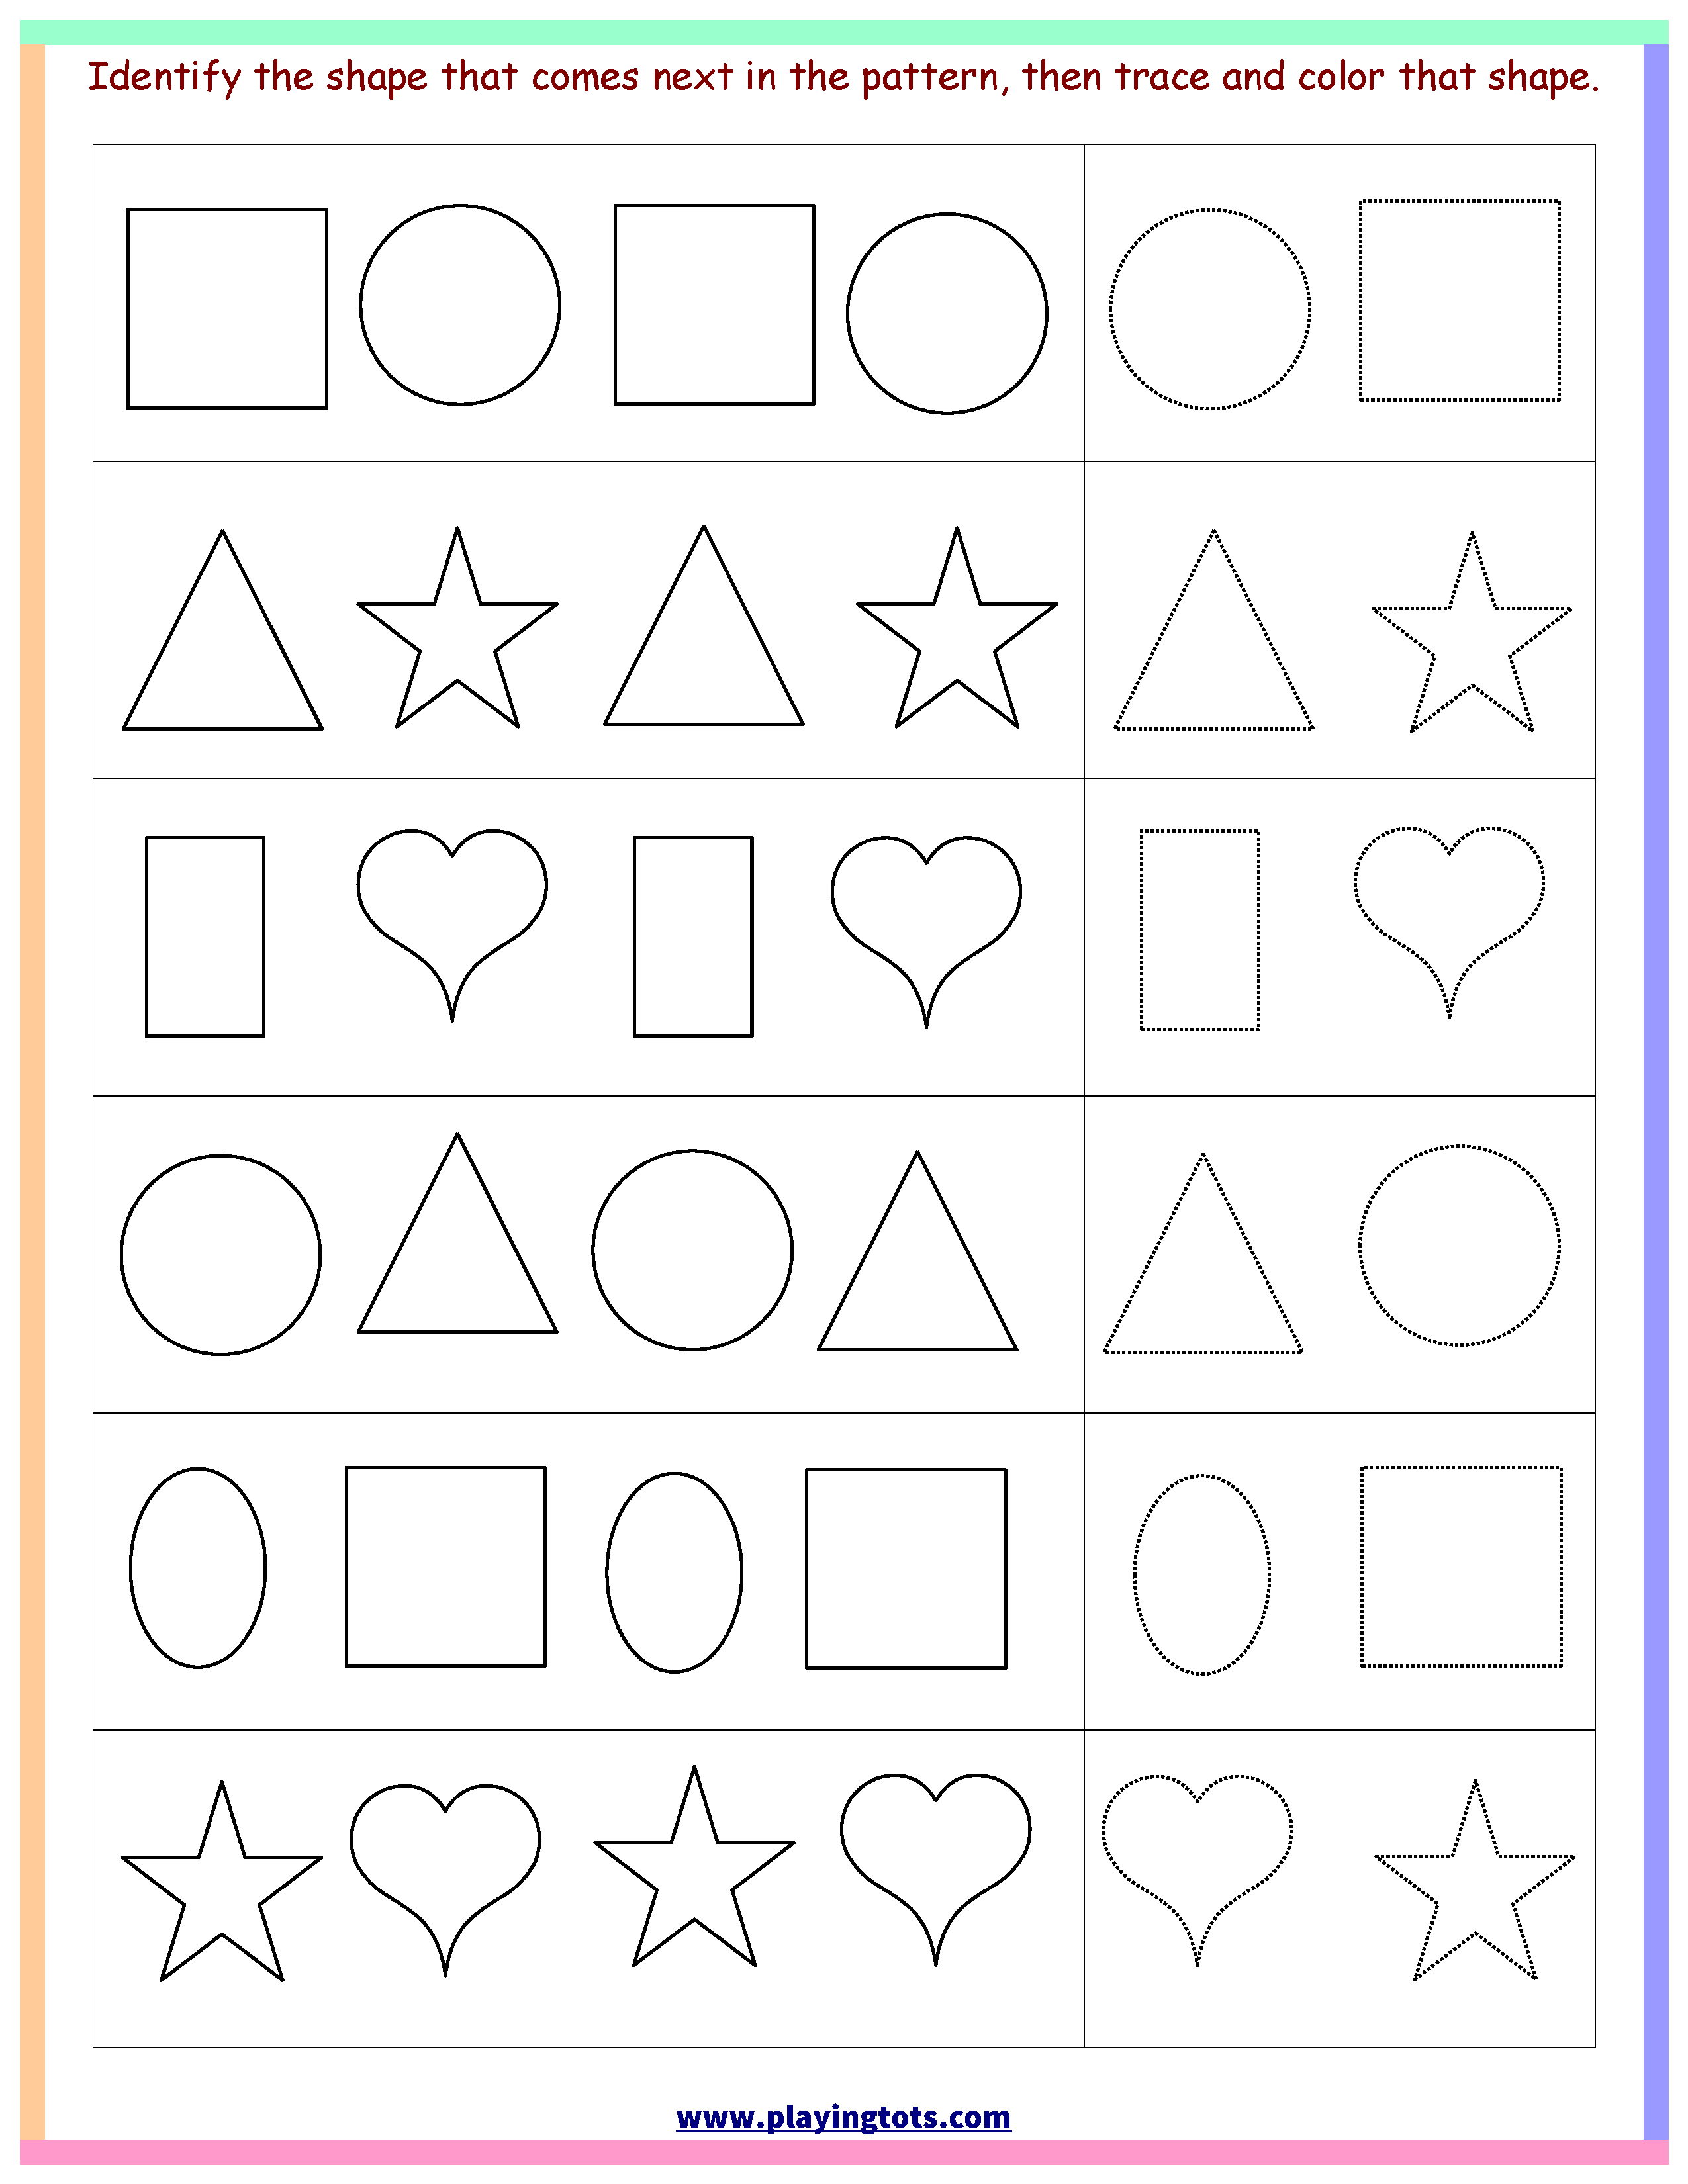 Free Printable Toddler Learning Worksheets | Free Printable